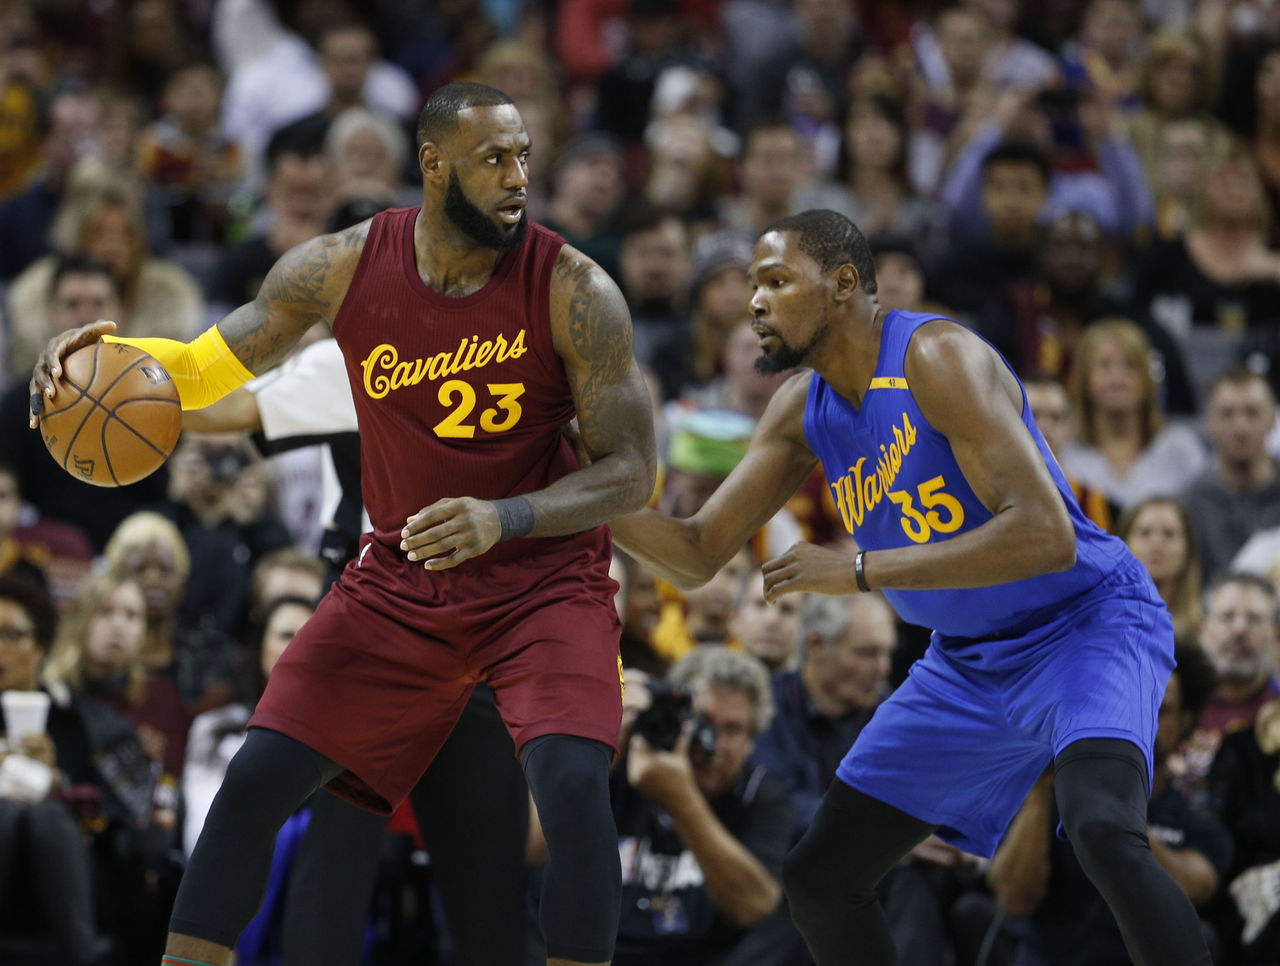 Cropped 2016 12 25t205826z 665448700 nocid rtrmadp 3 nba golden state warriors at cleveland cavaliers